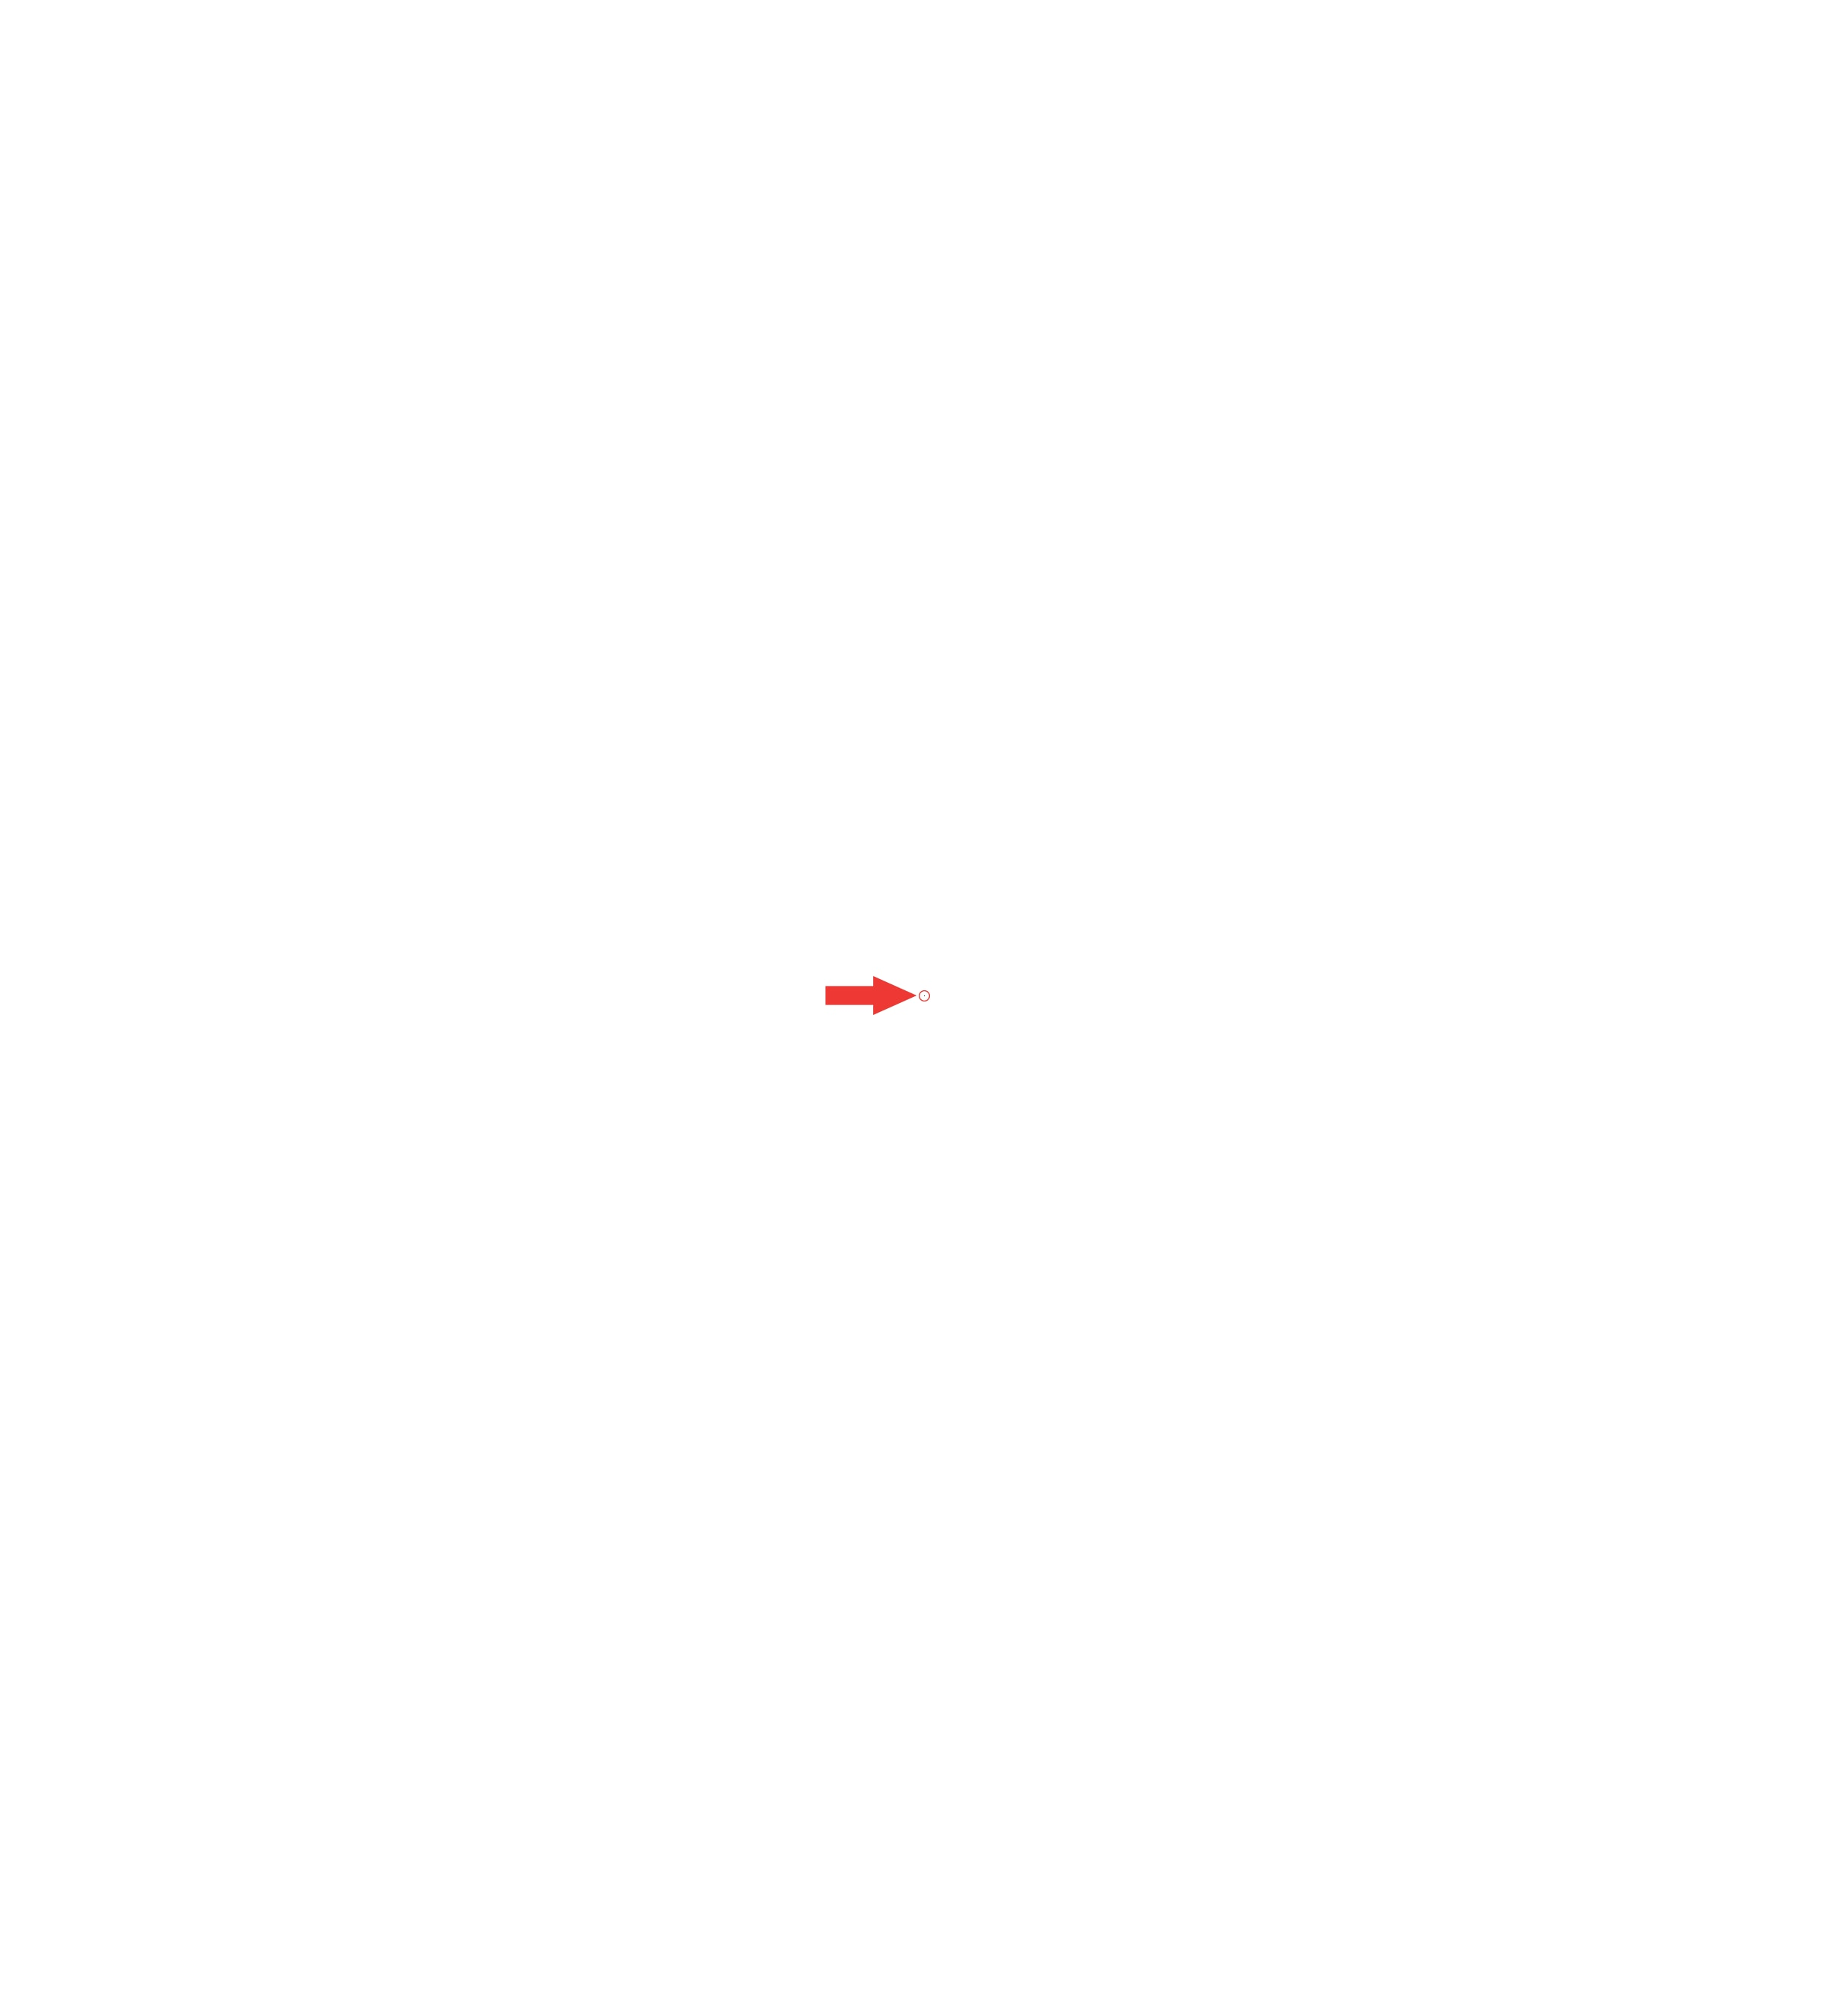 One pixel circled